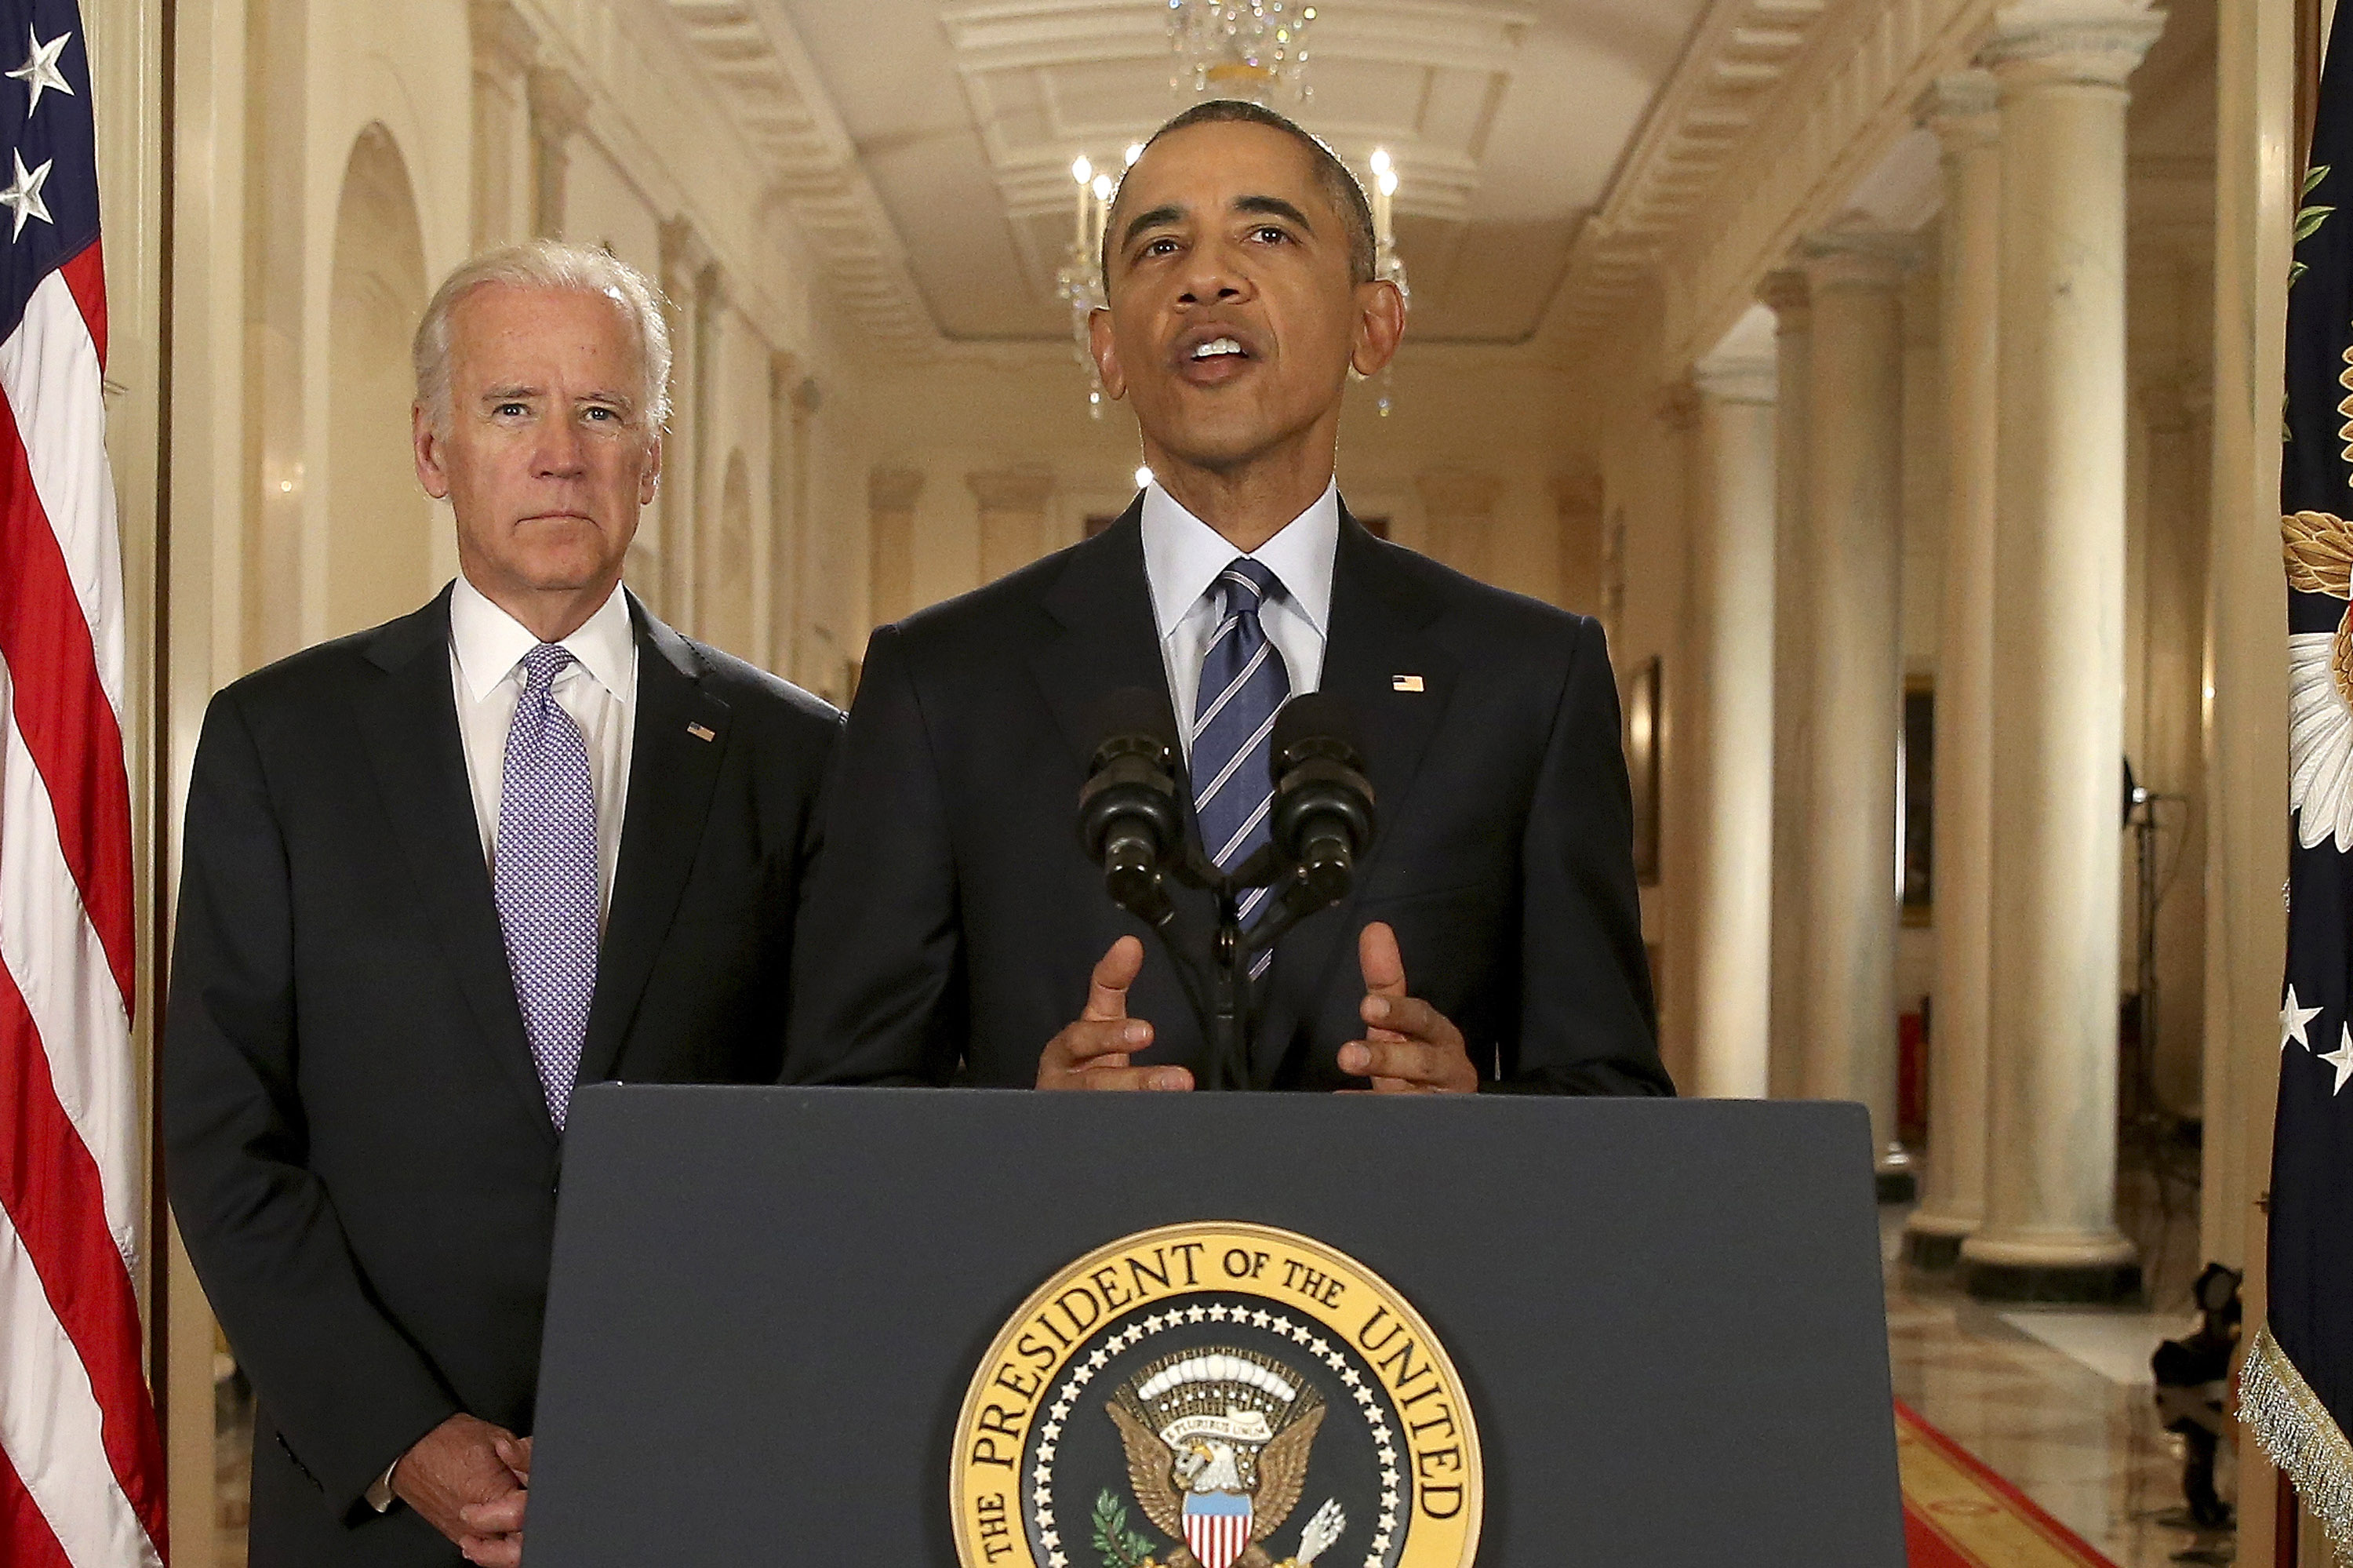 President Obama Addresses Iran Nuclear Deal